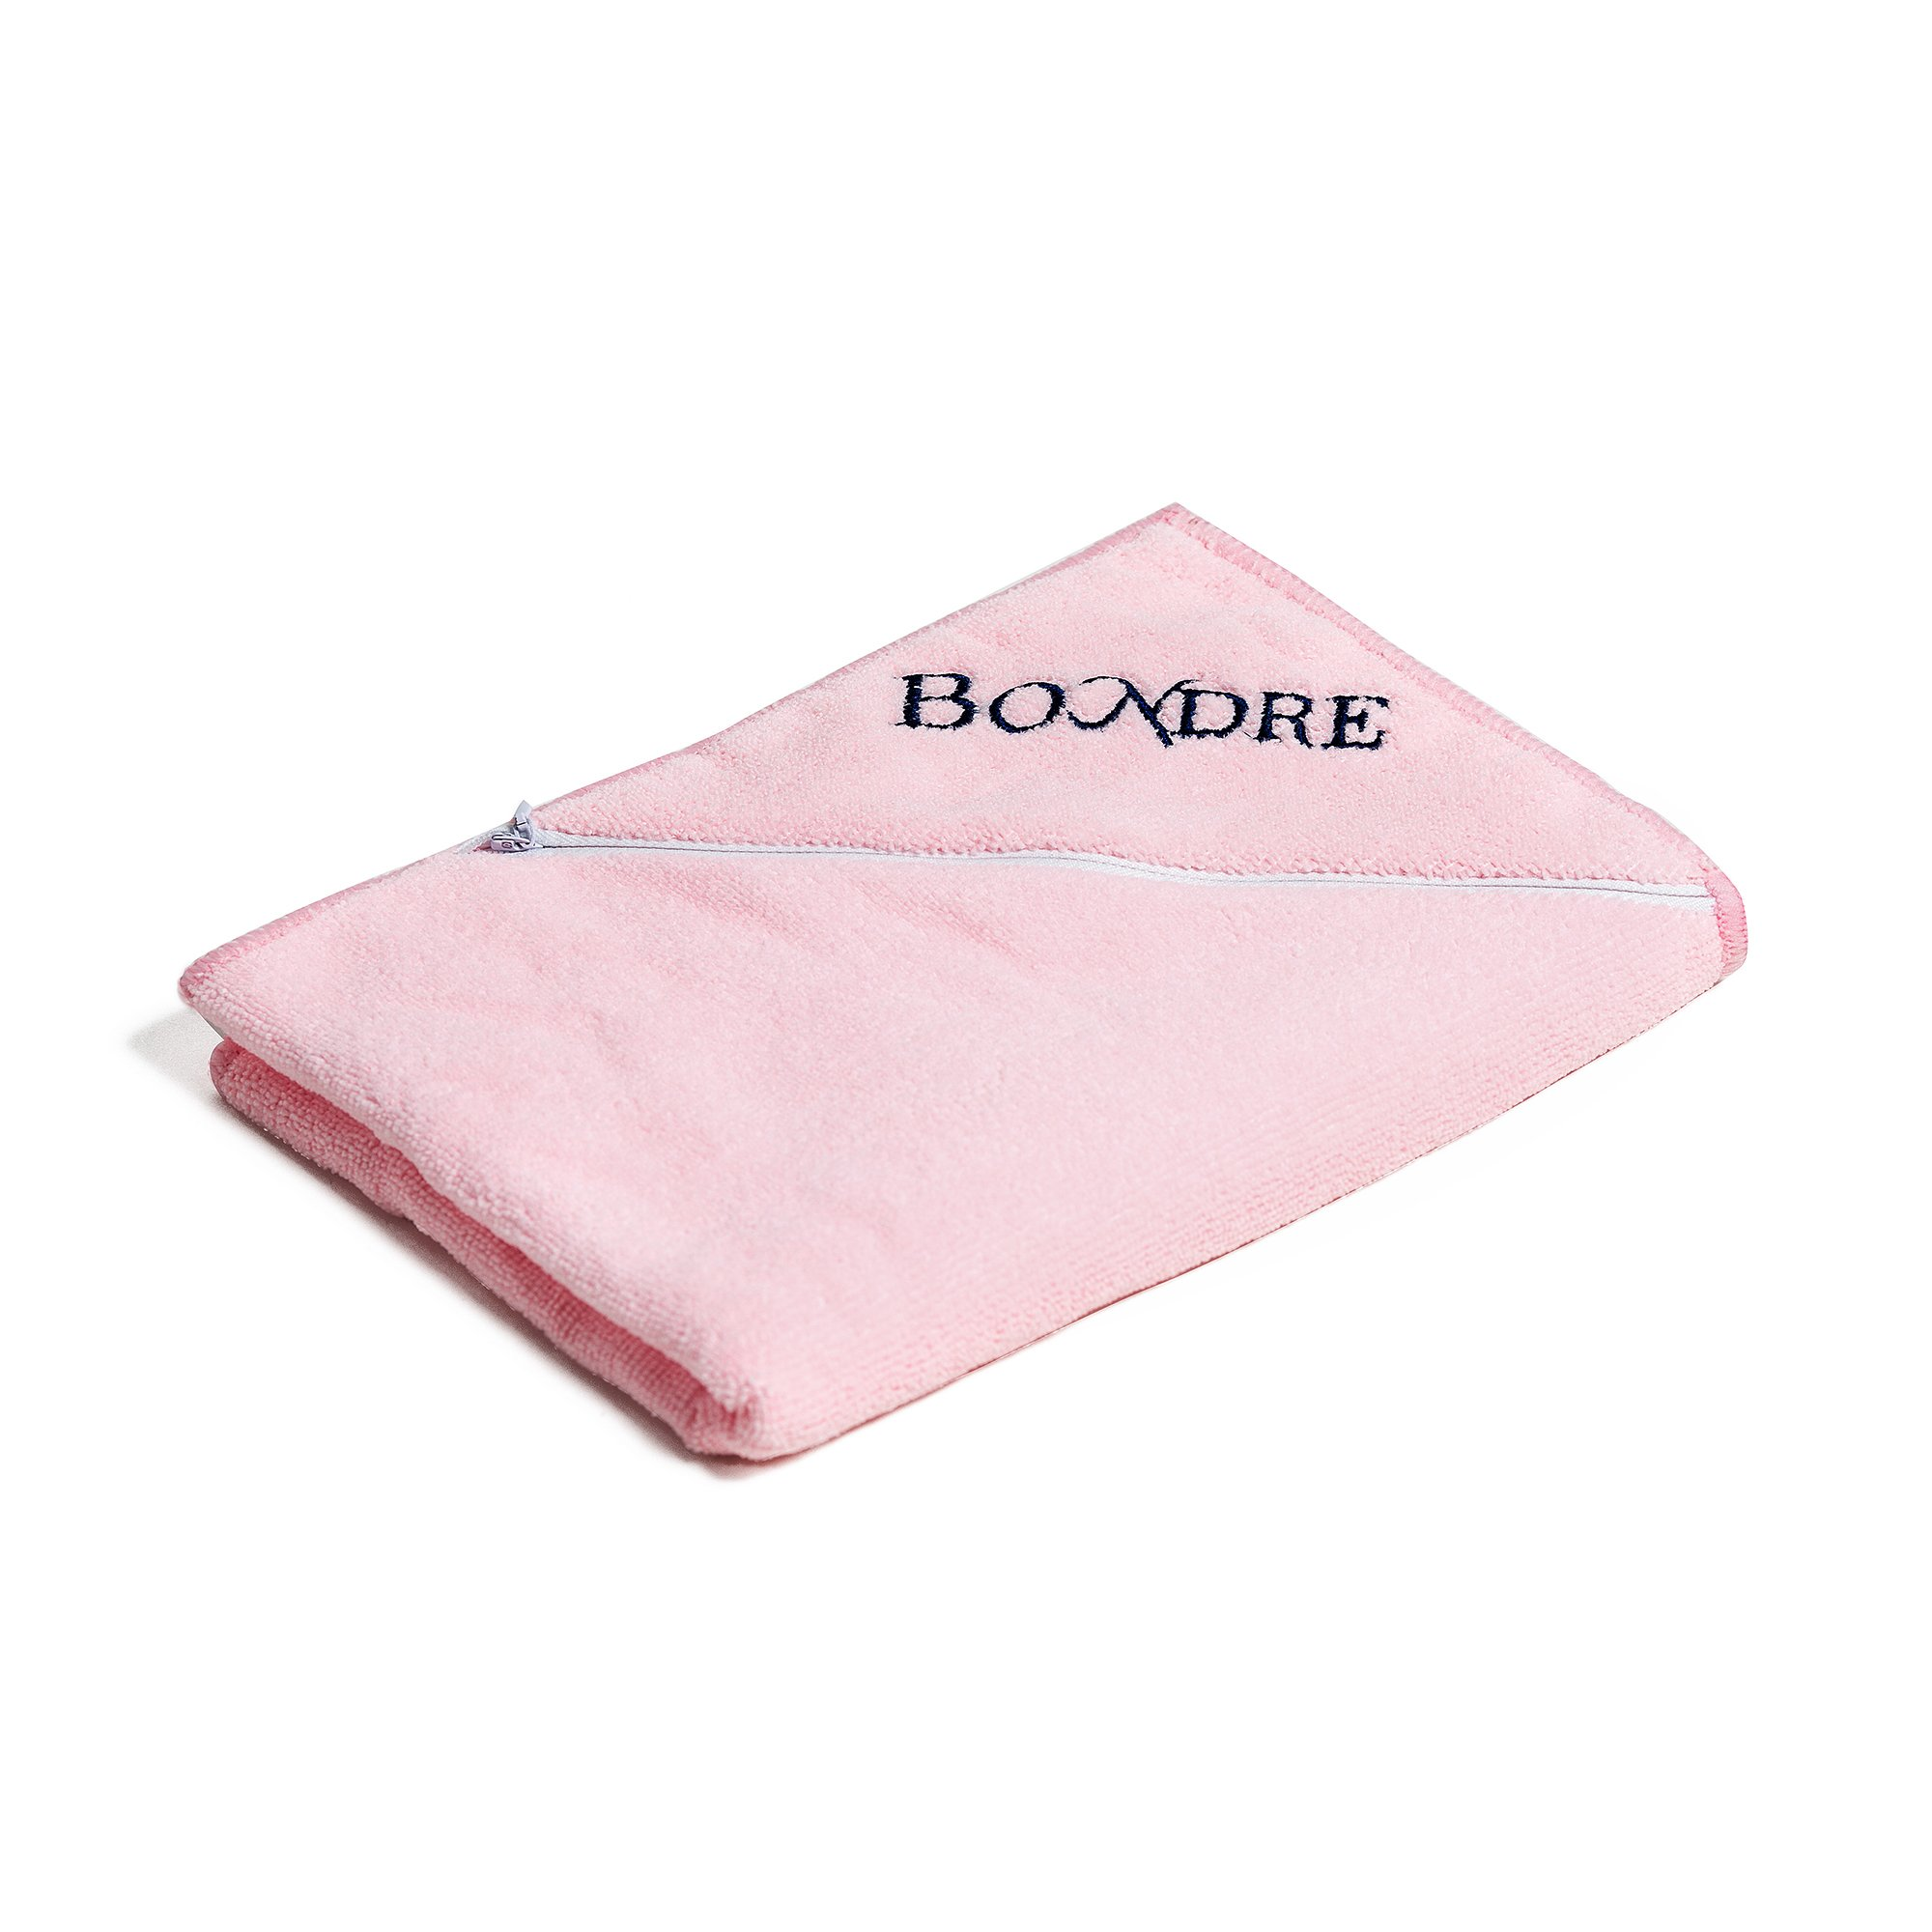 BONDRE Thick Microfiber Hair Drying Towel, Soft Hair Wrap Towel, Quick Dry for Women & Men 1 Gift Pack, Super Absorbent Anti-Frizz, Large 40x14 Inch By